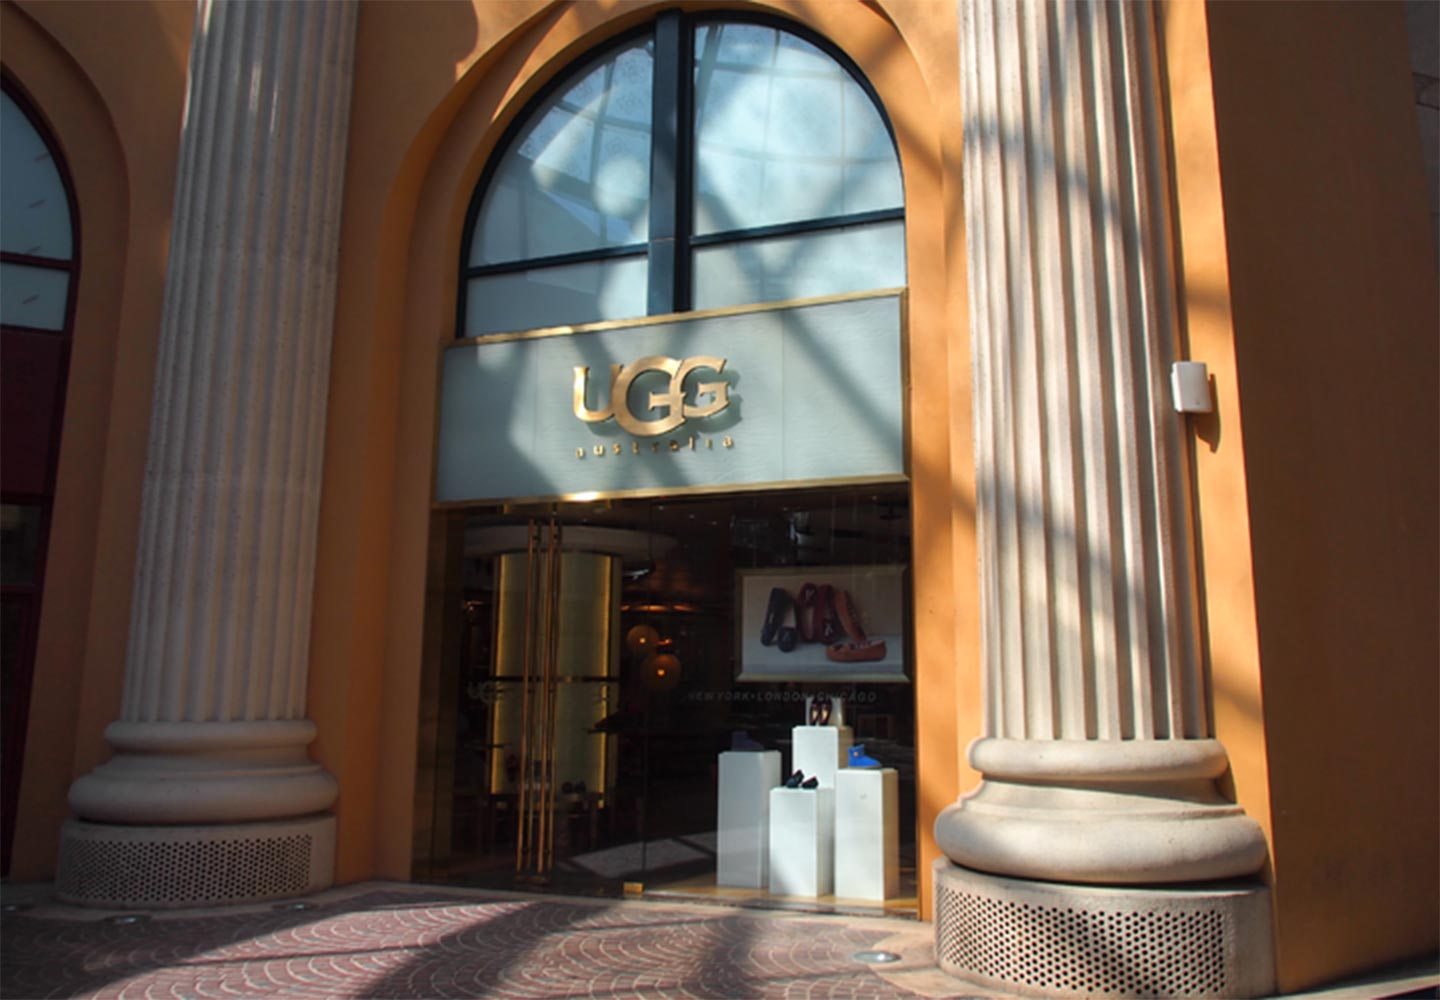 storefront of Ugg retail store